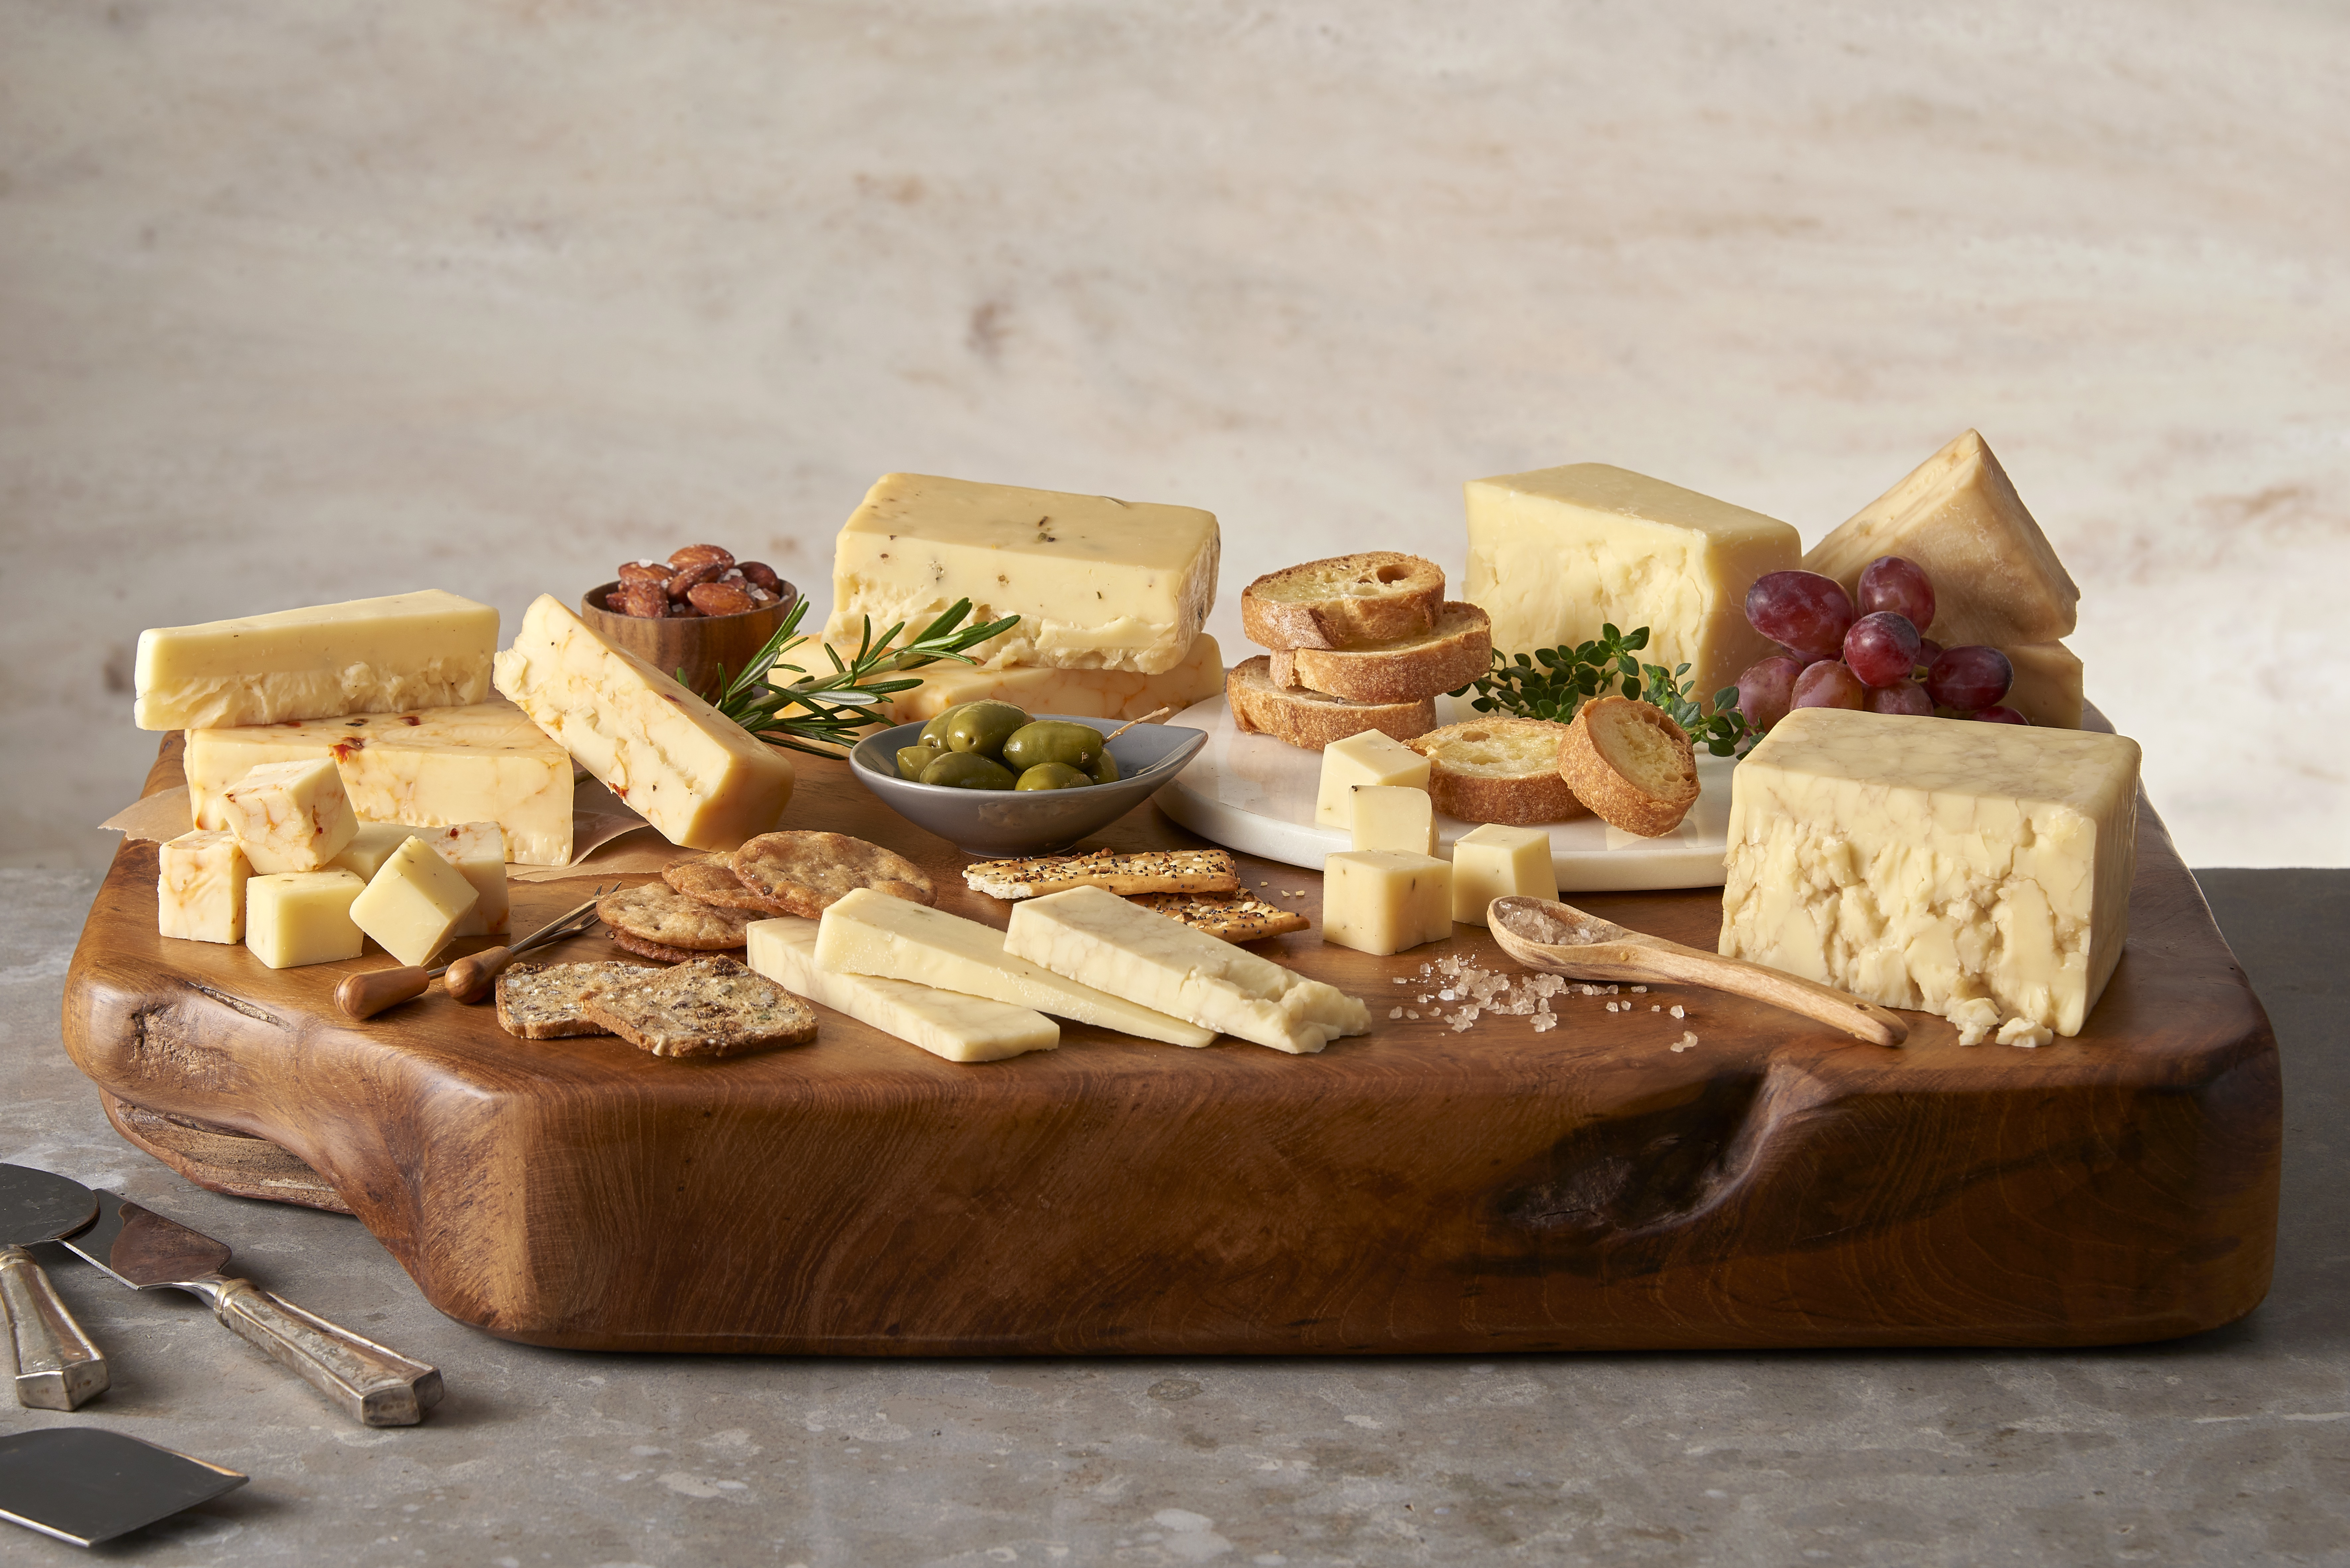 Cheese on a wooden platter